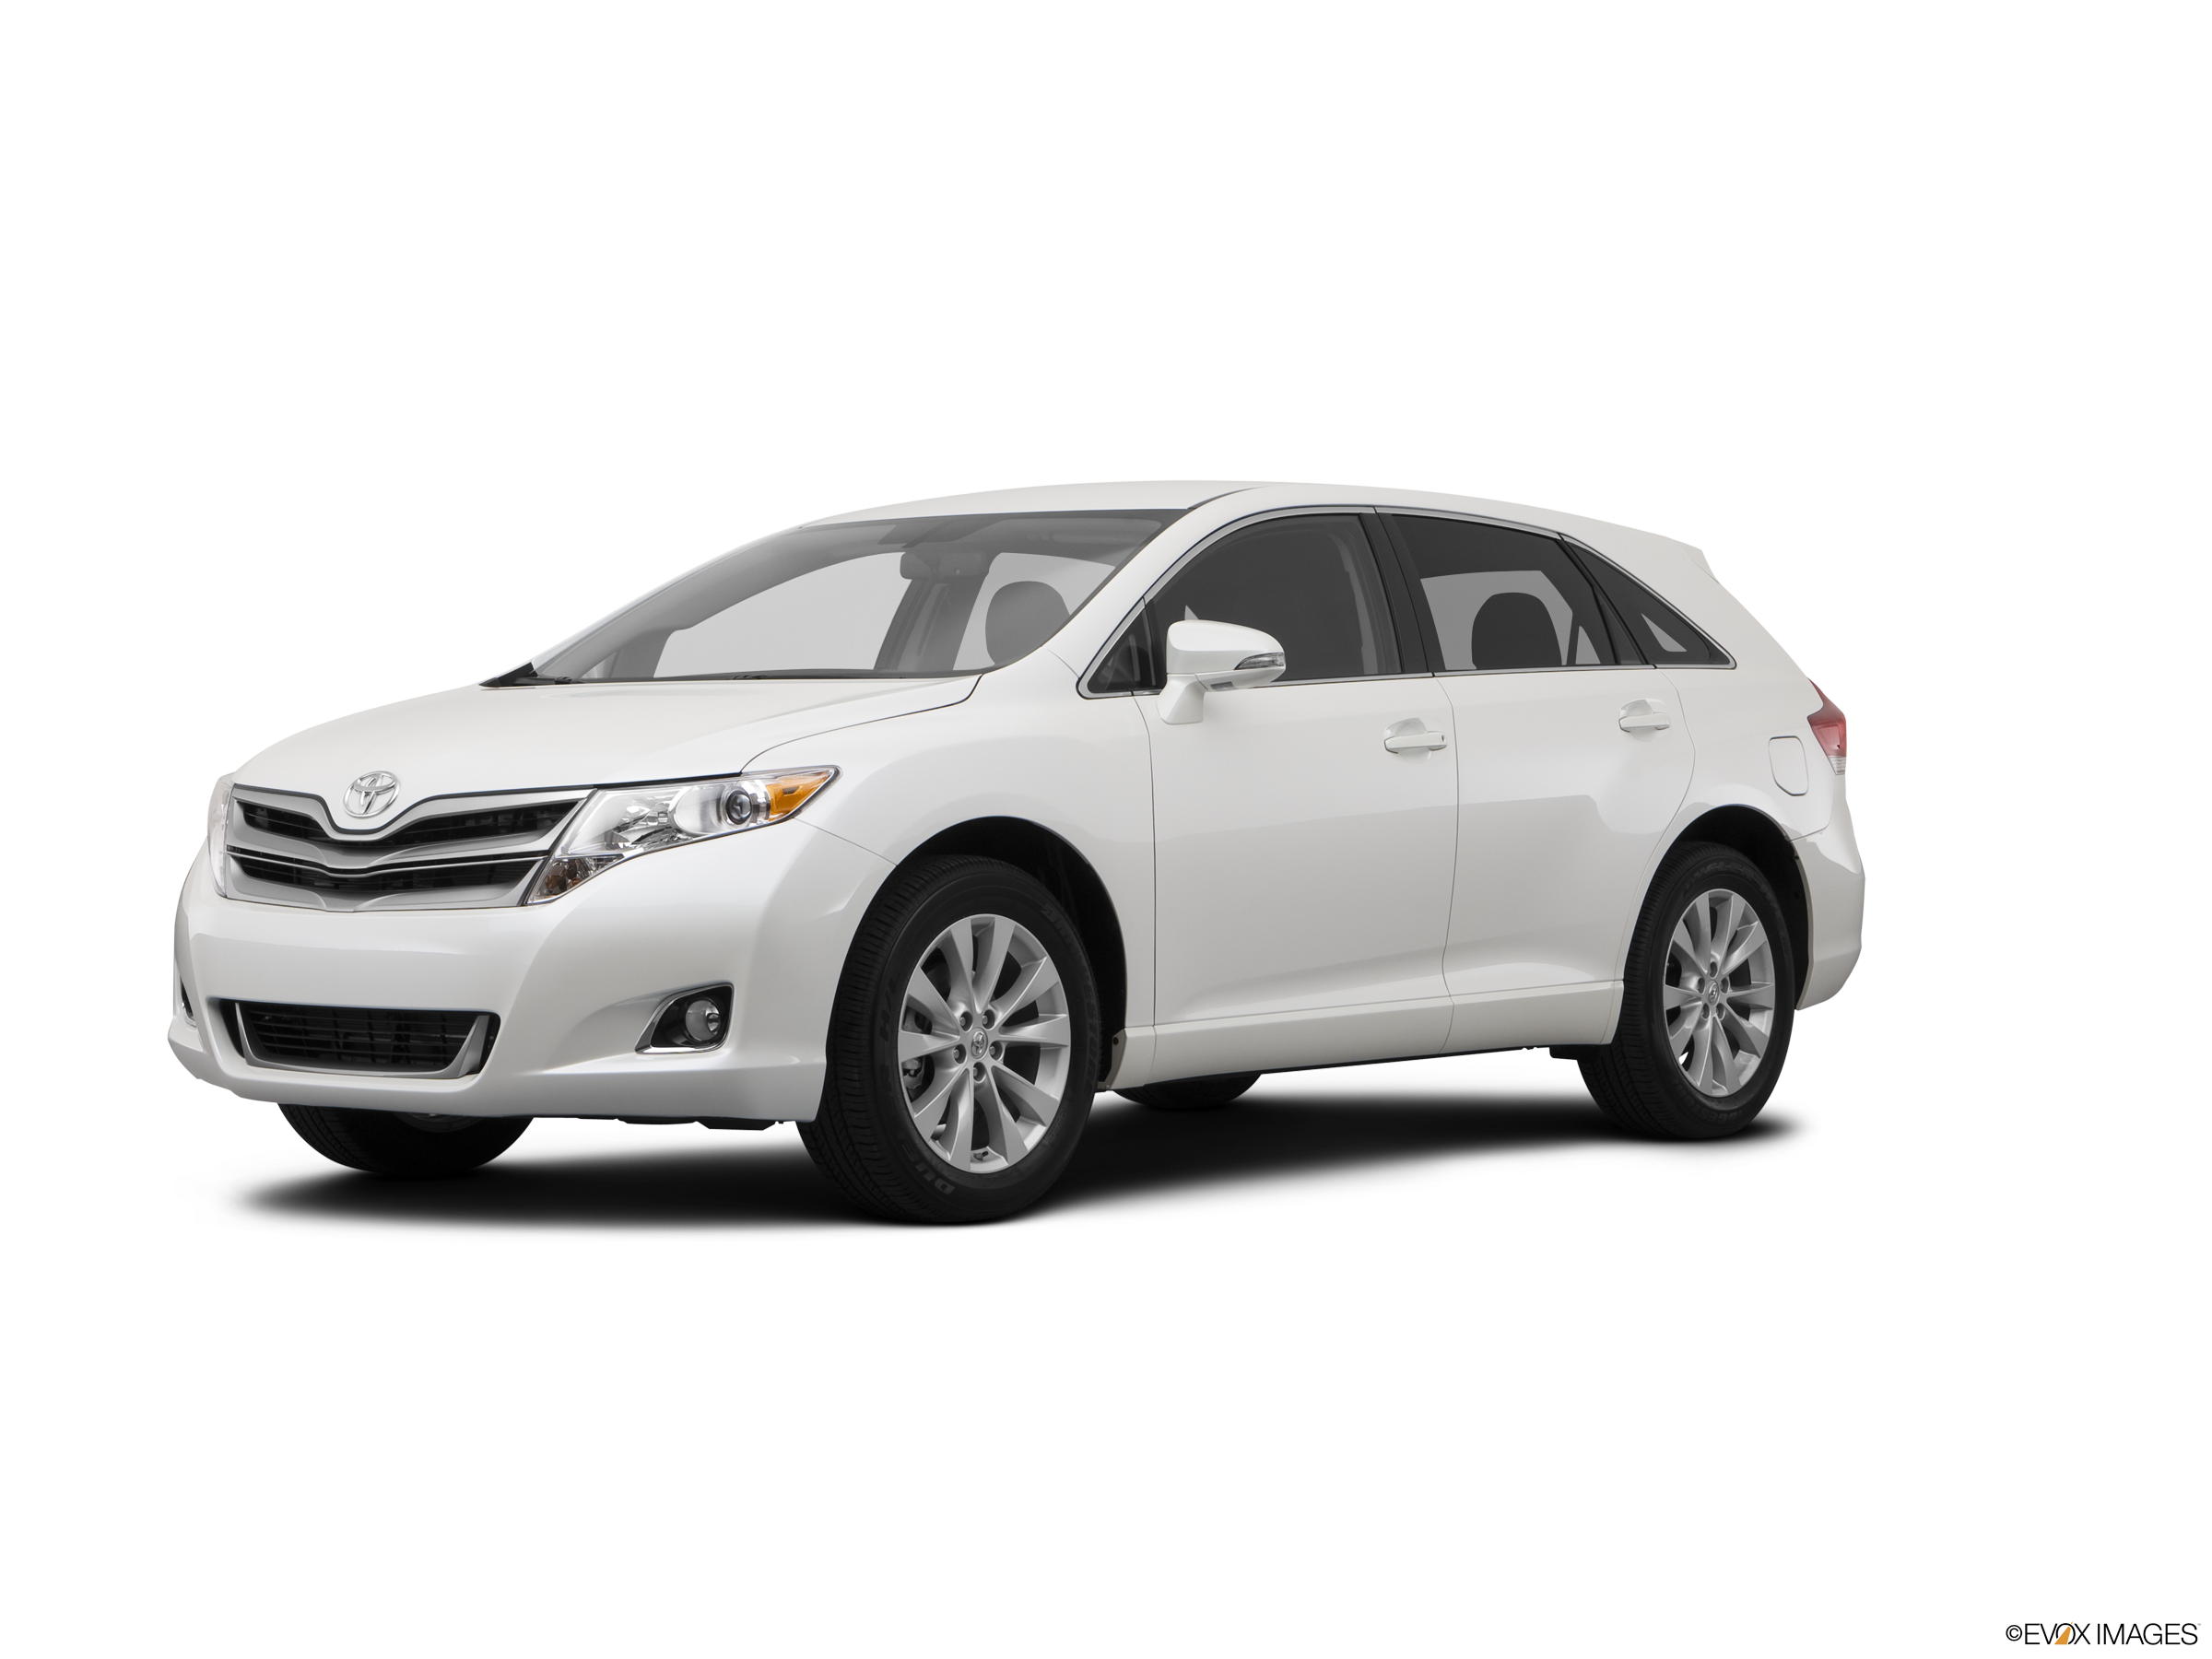 used 2014 toyota venza values & cars for sale | kelley blue book  kelley blue book